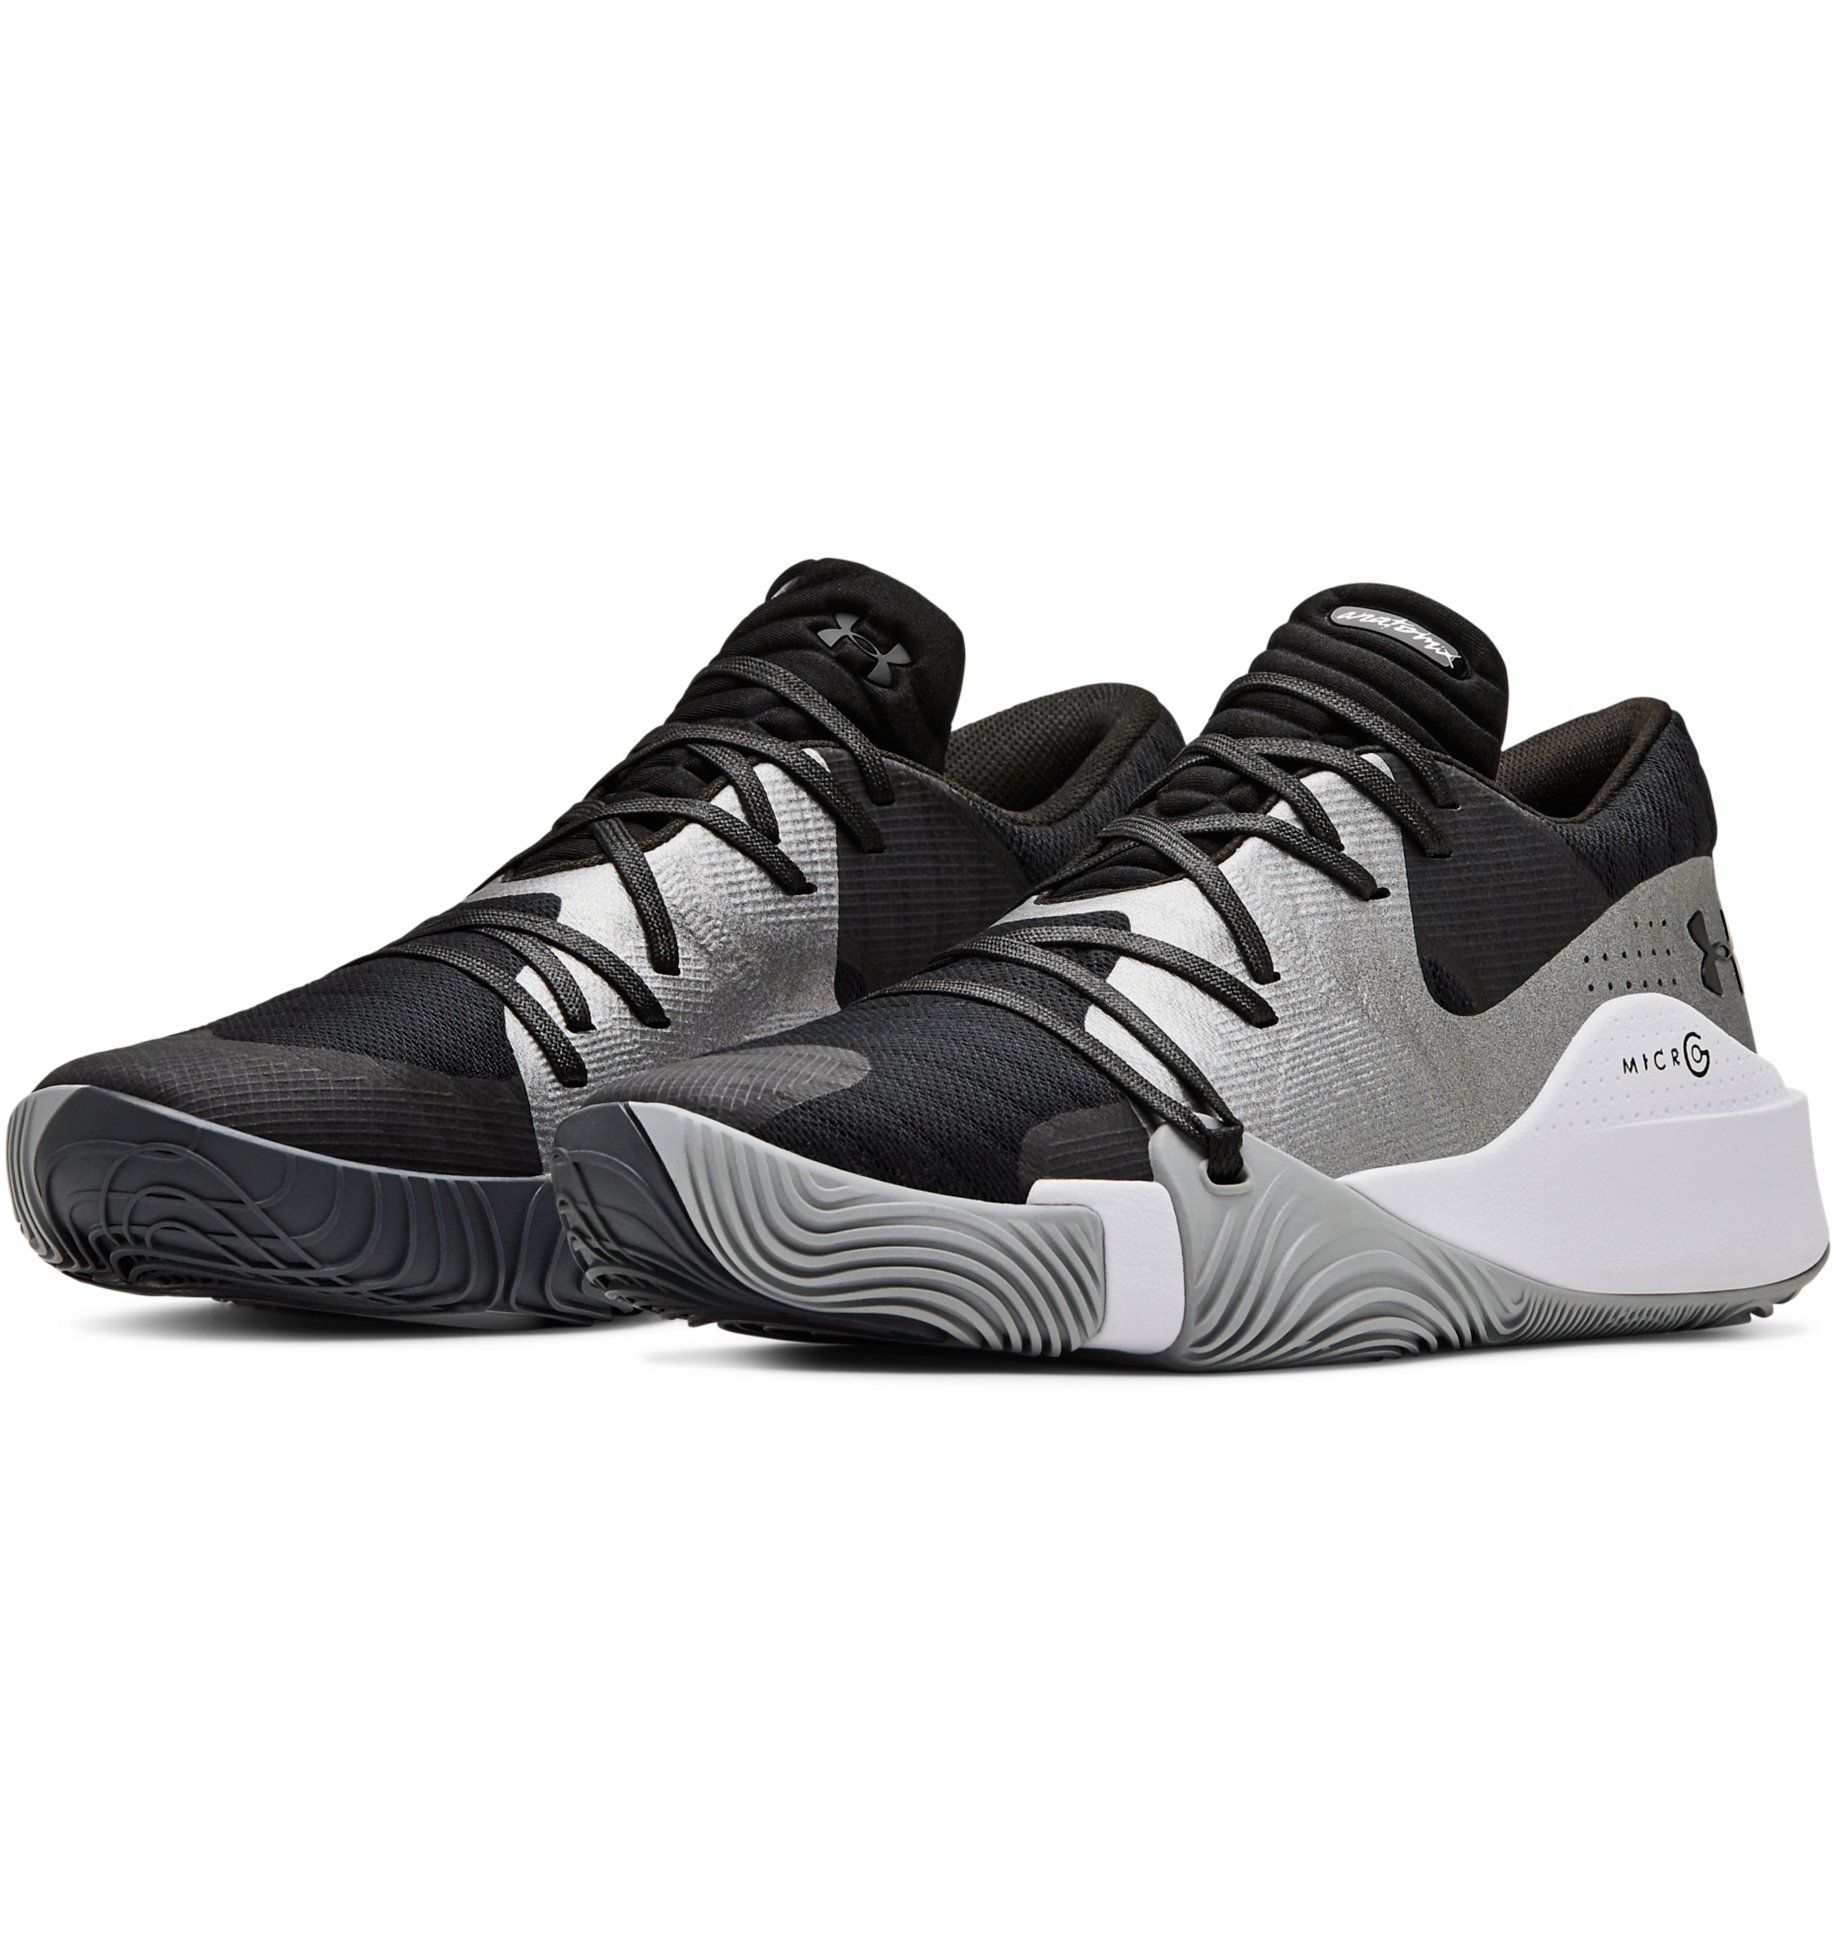 3838c260556743 10 Best Basketball Shoes for Men 2019